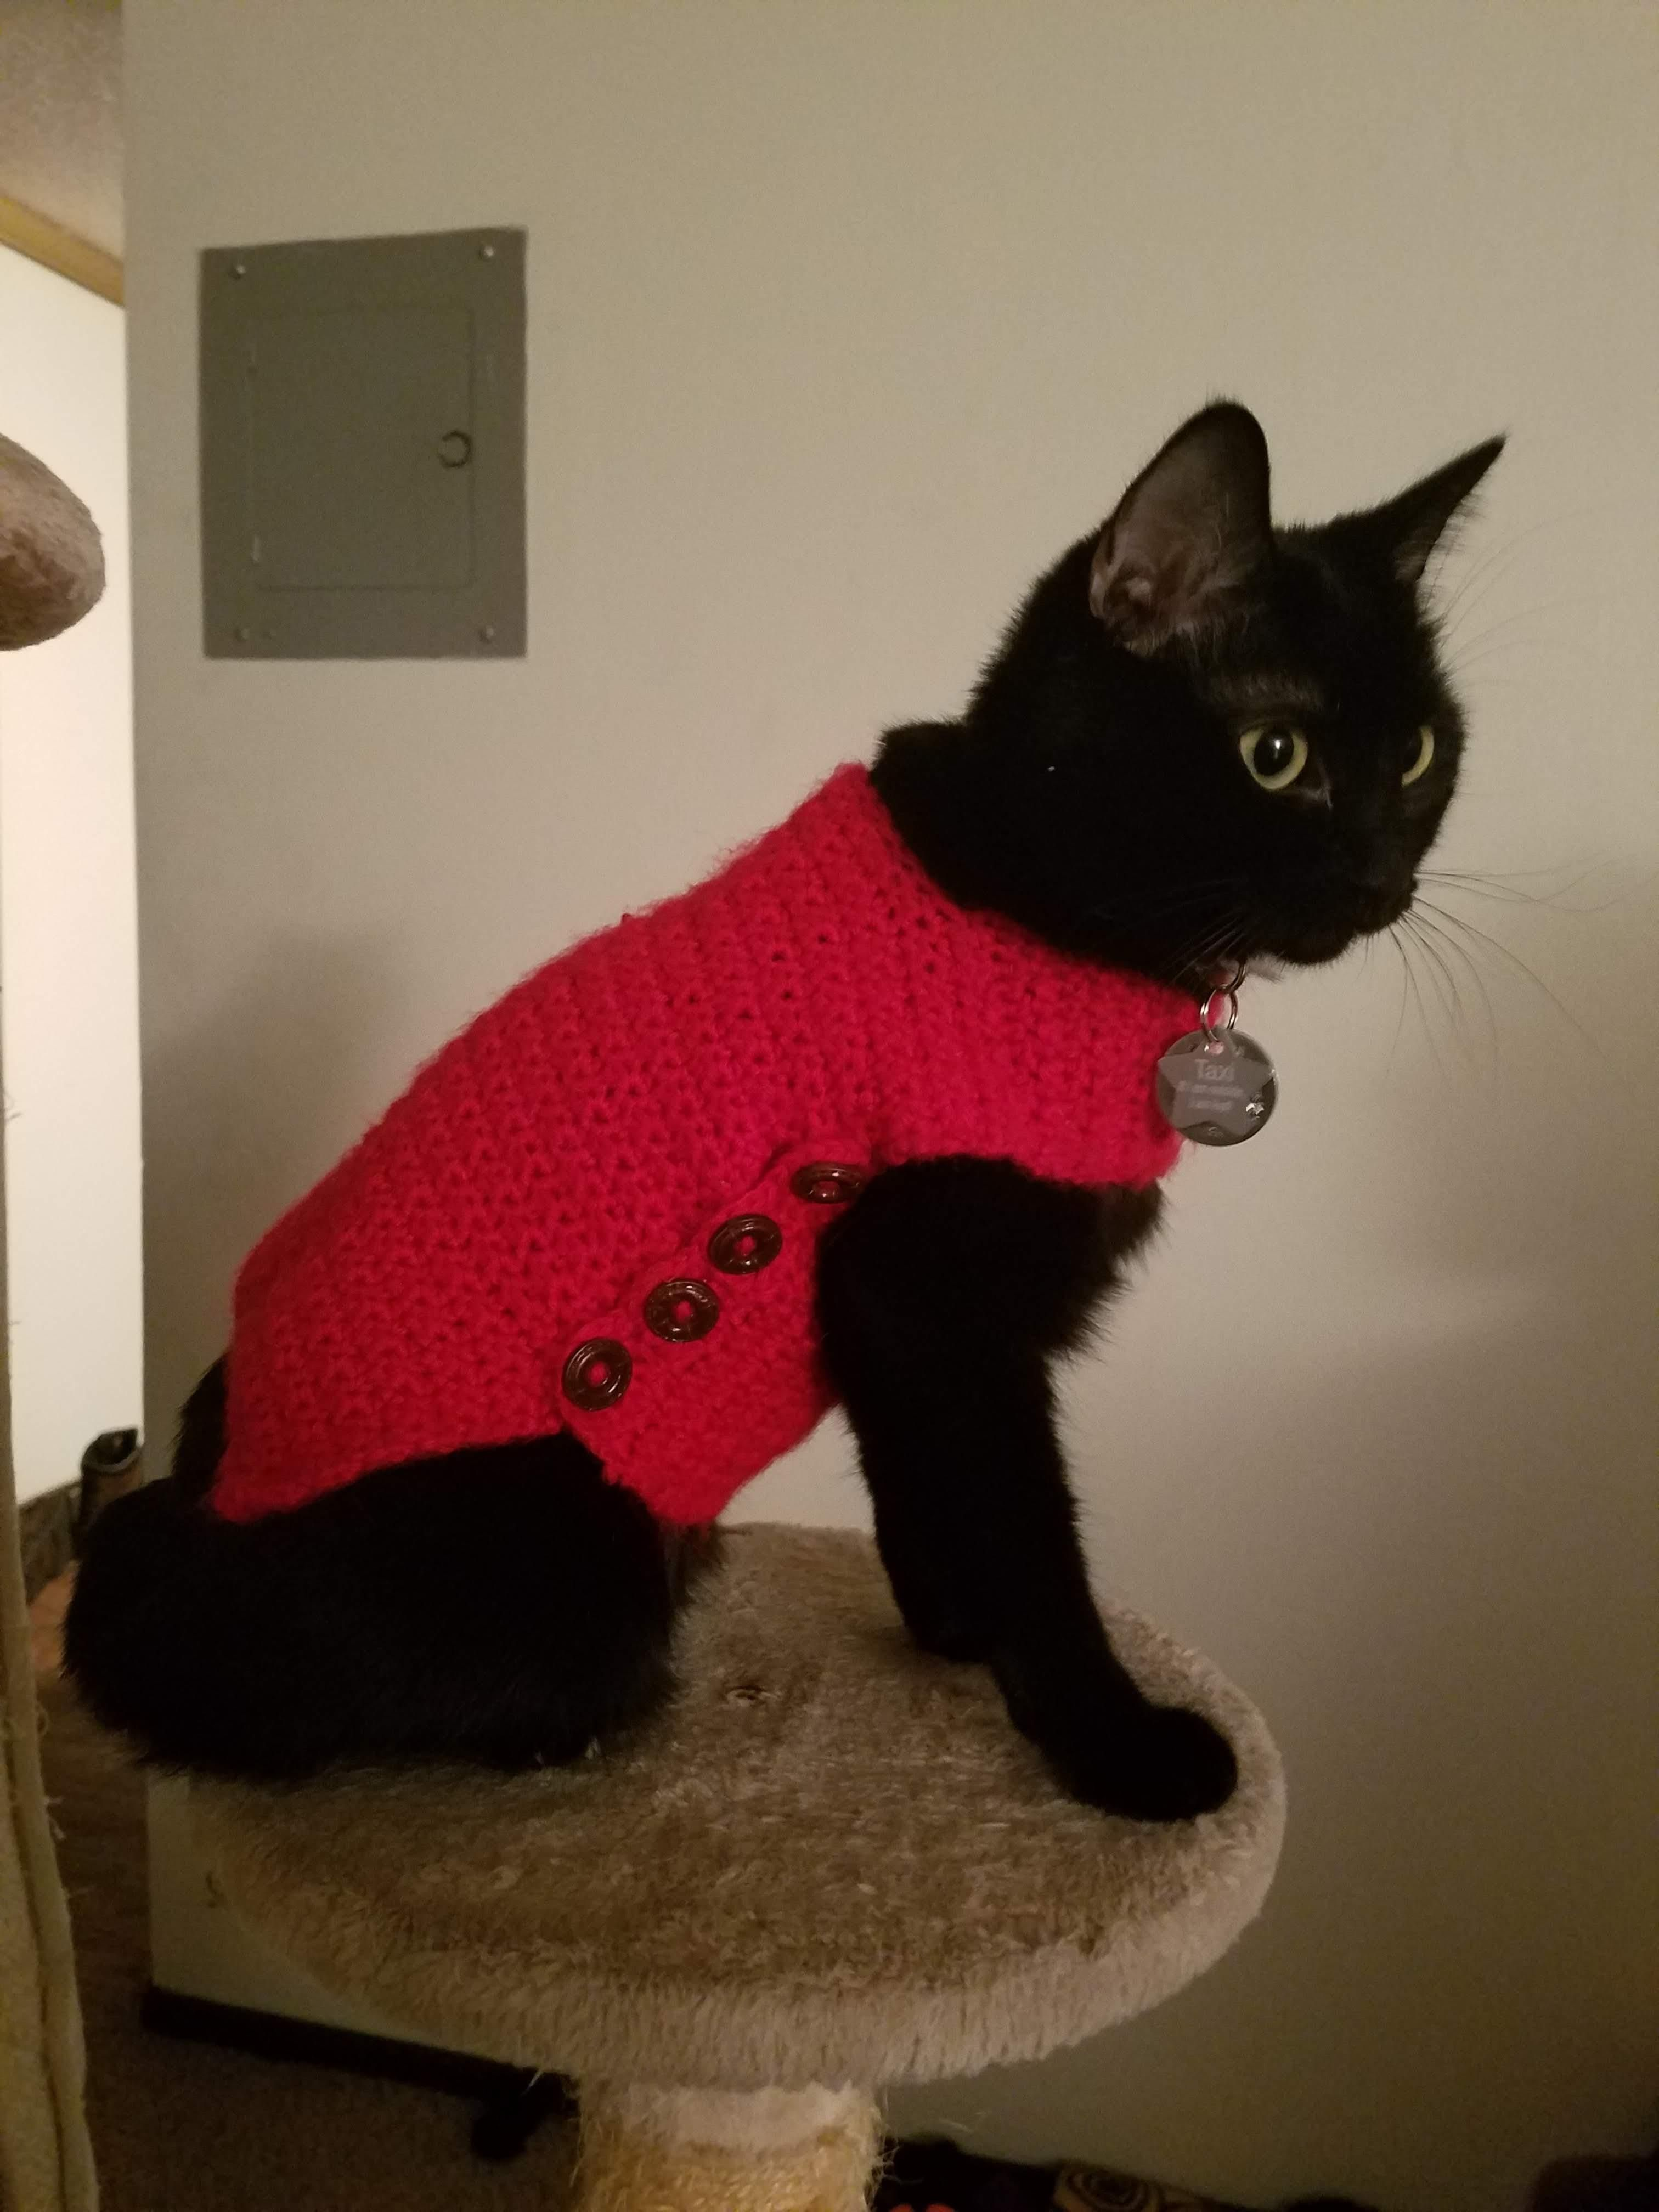 Taxi Getting Red Y For Christmas In Her Sweater Cat Having Kittens Baby Cats Christmas Cats